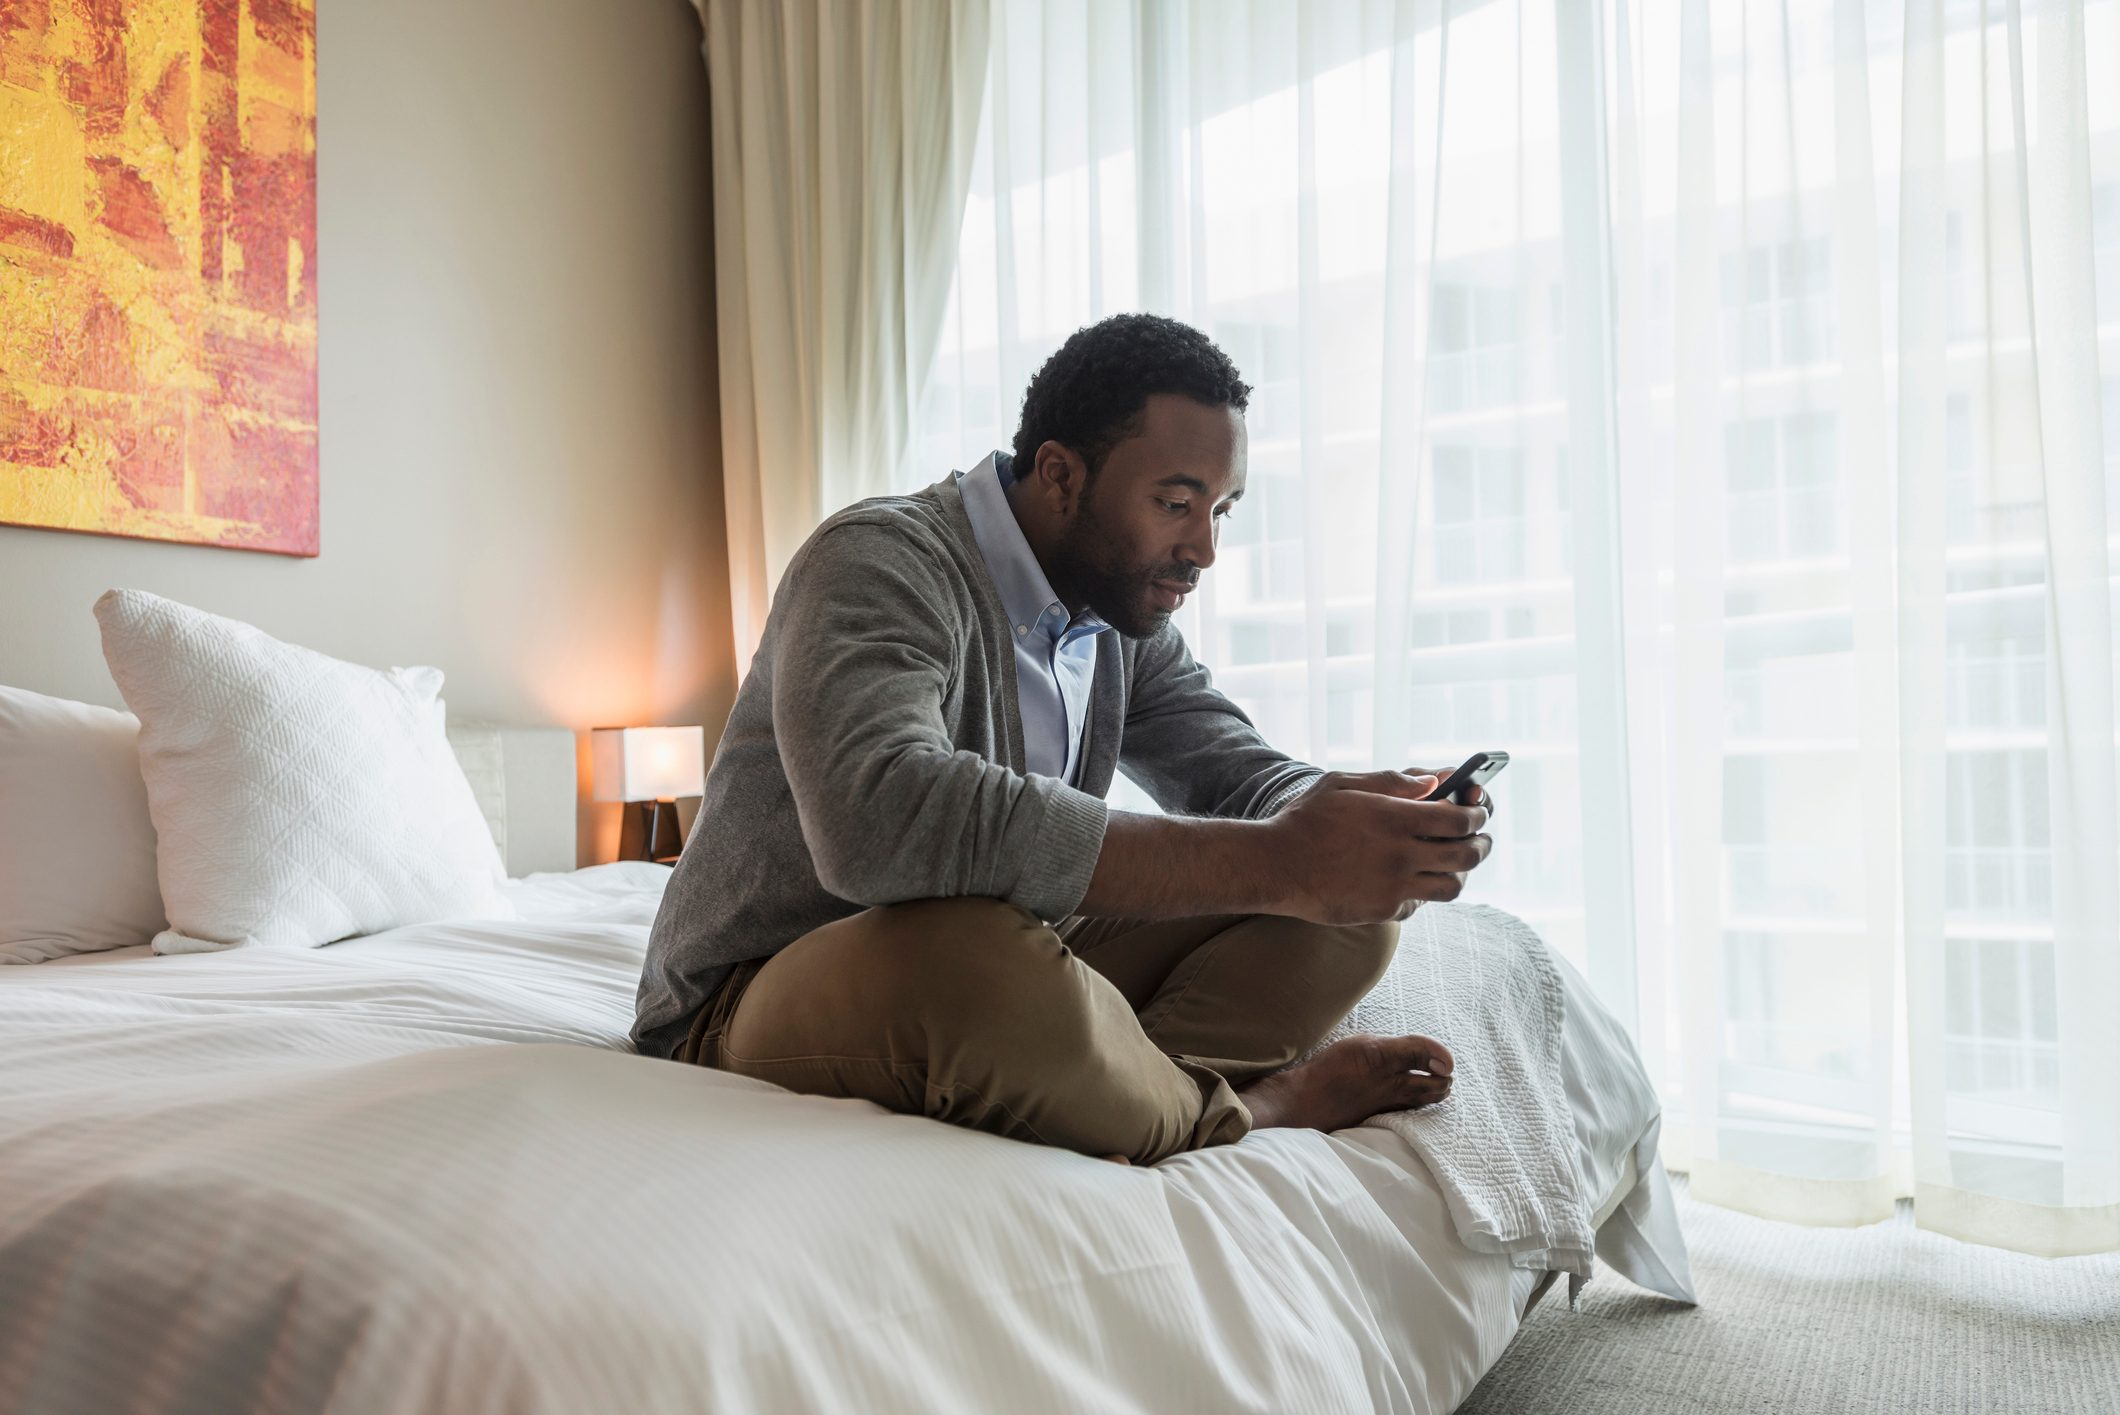 Black man using cell phone on bed